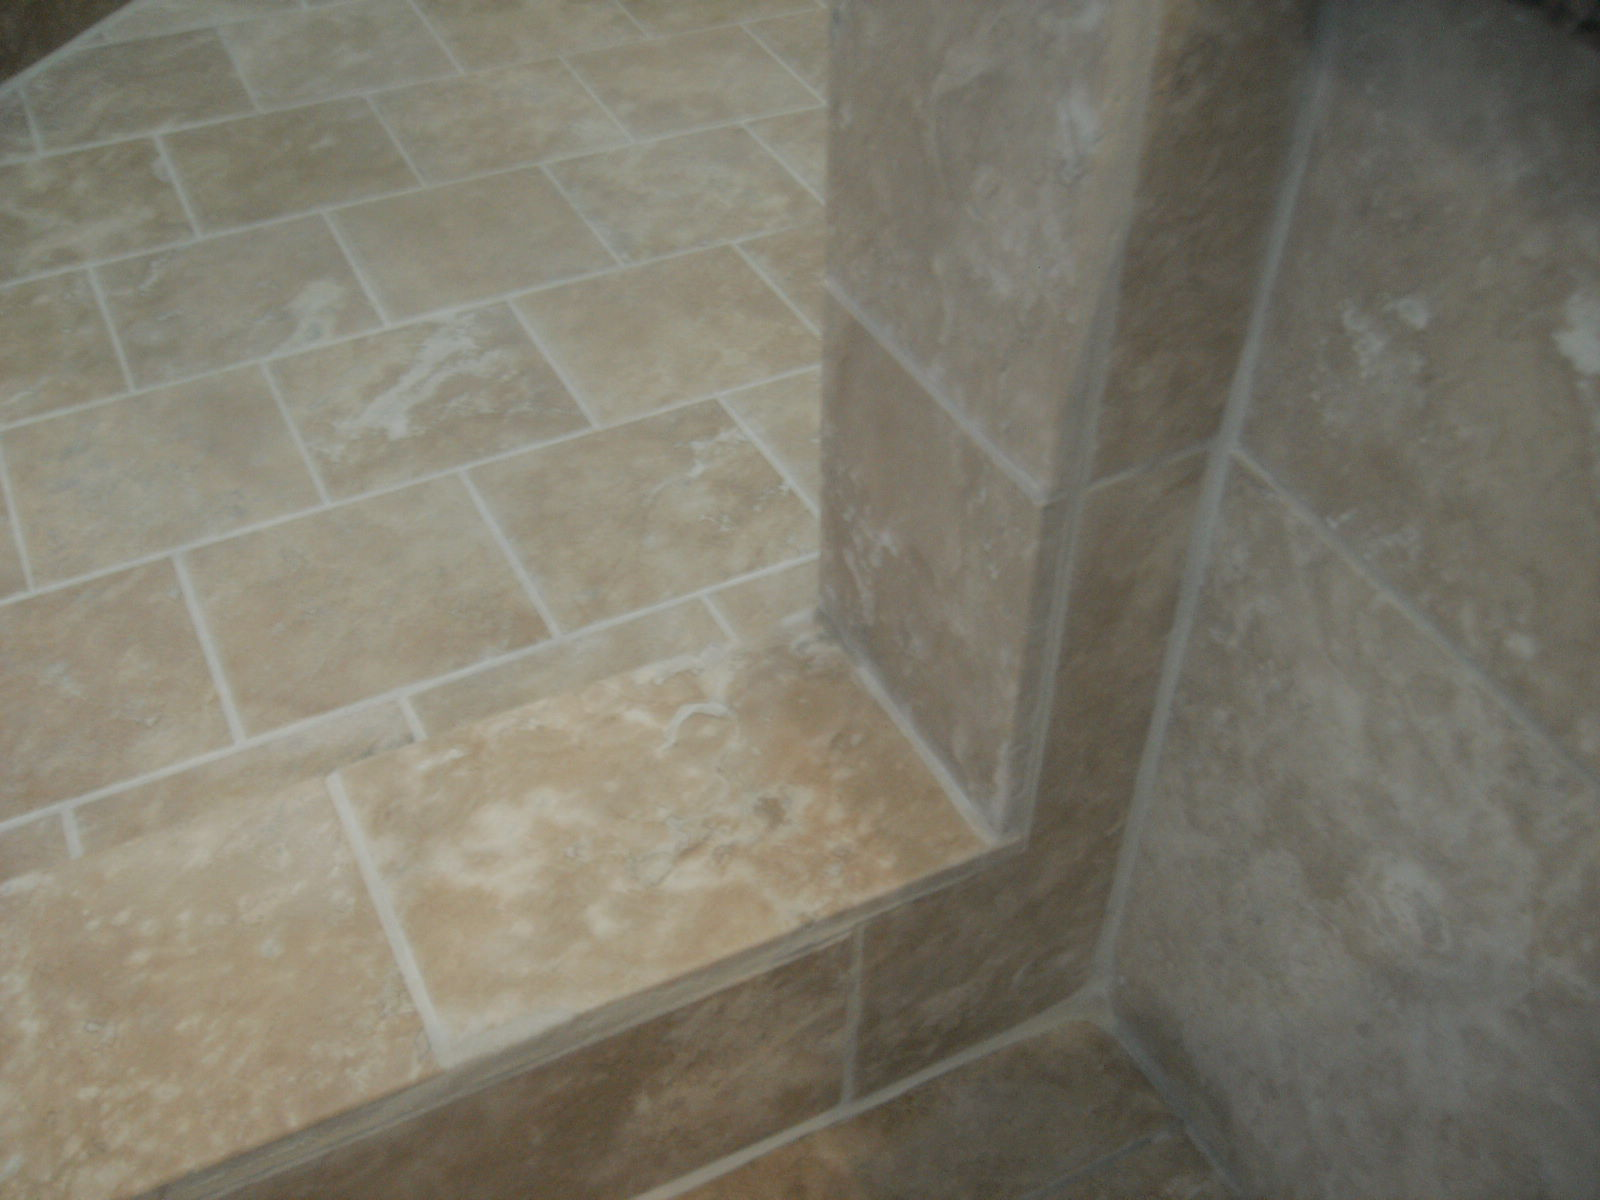 black mold atra and travertine tile